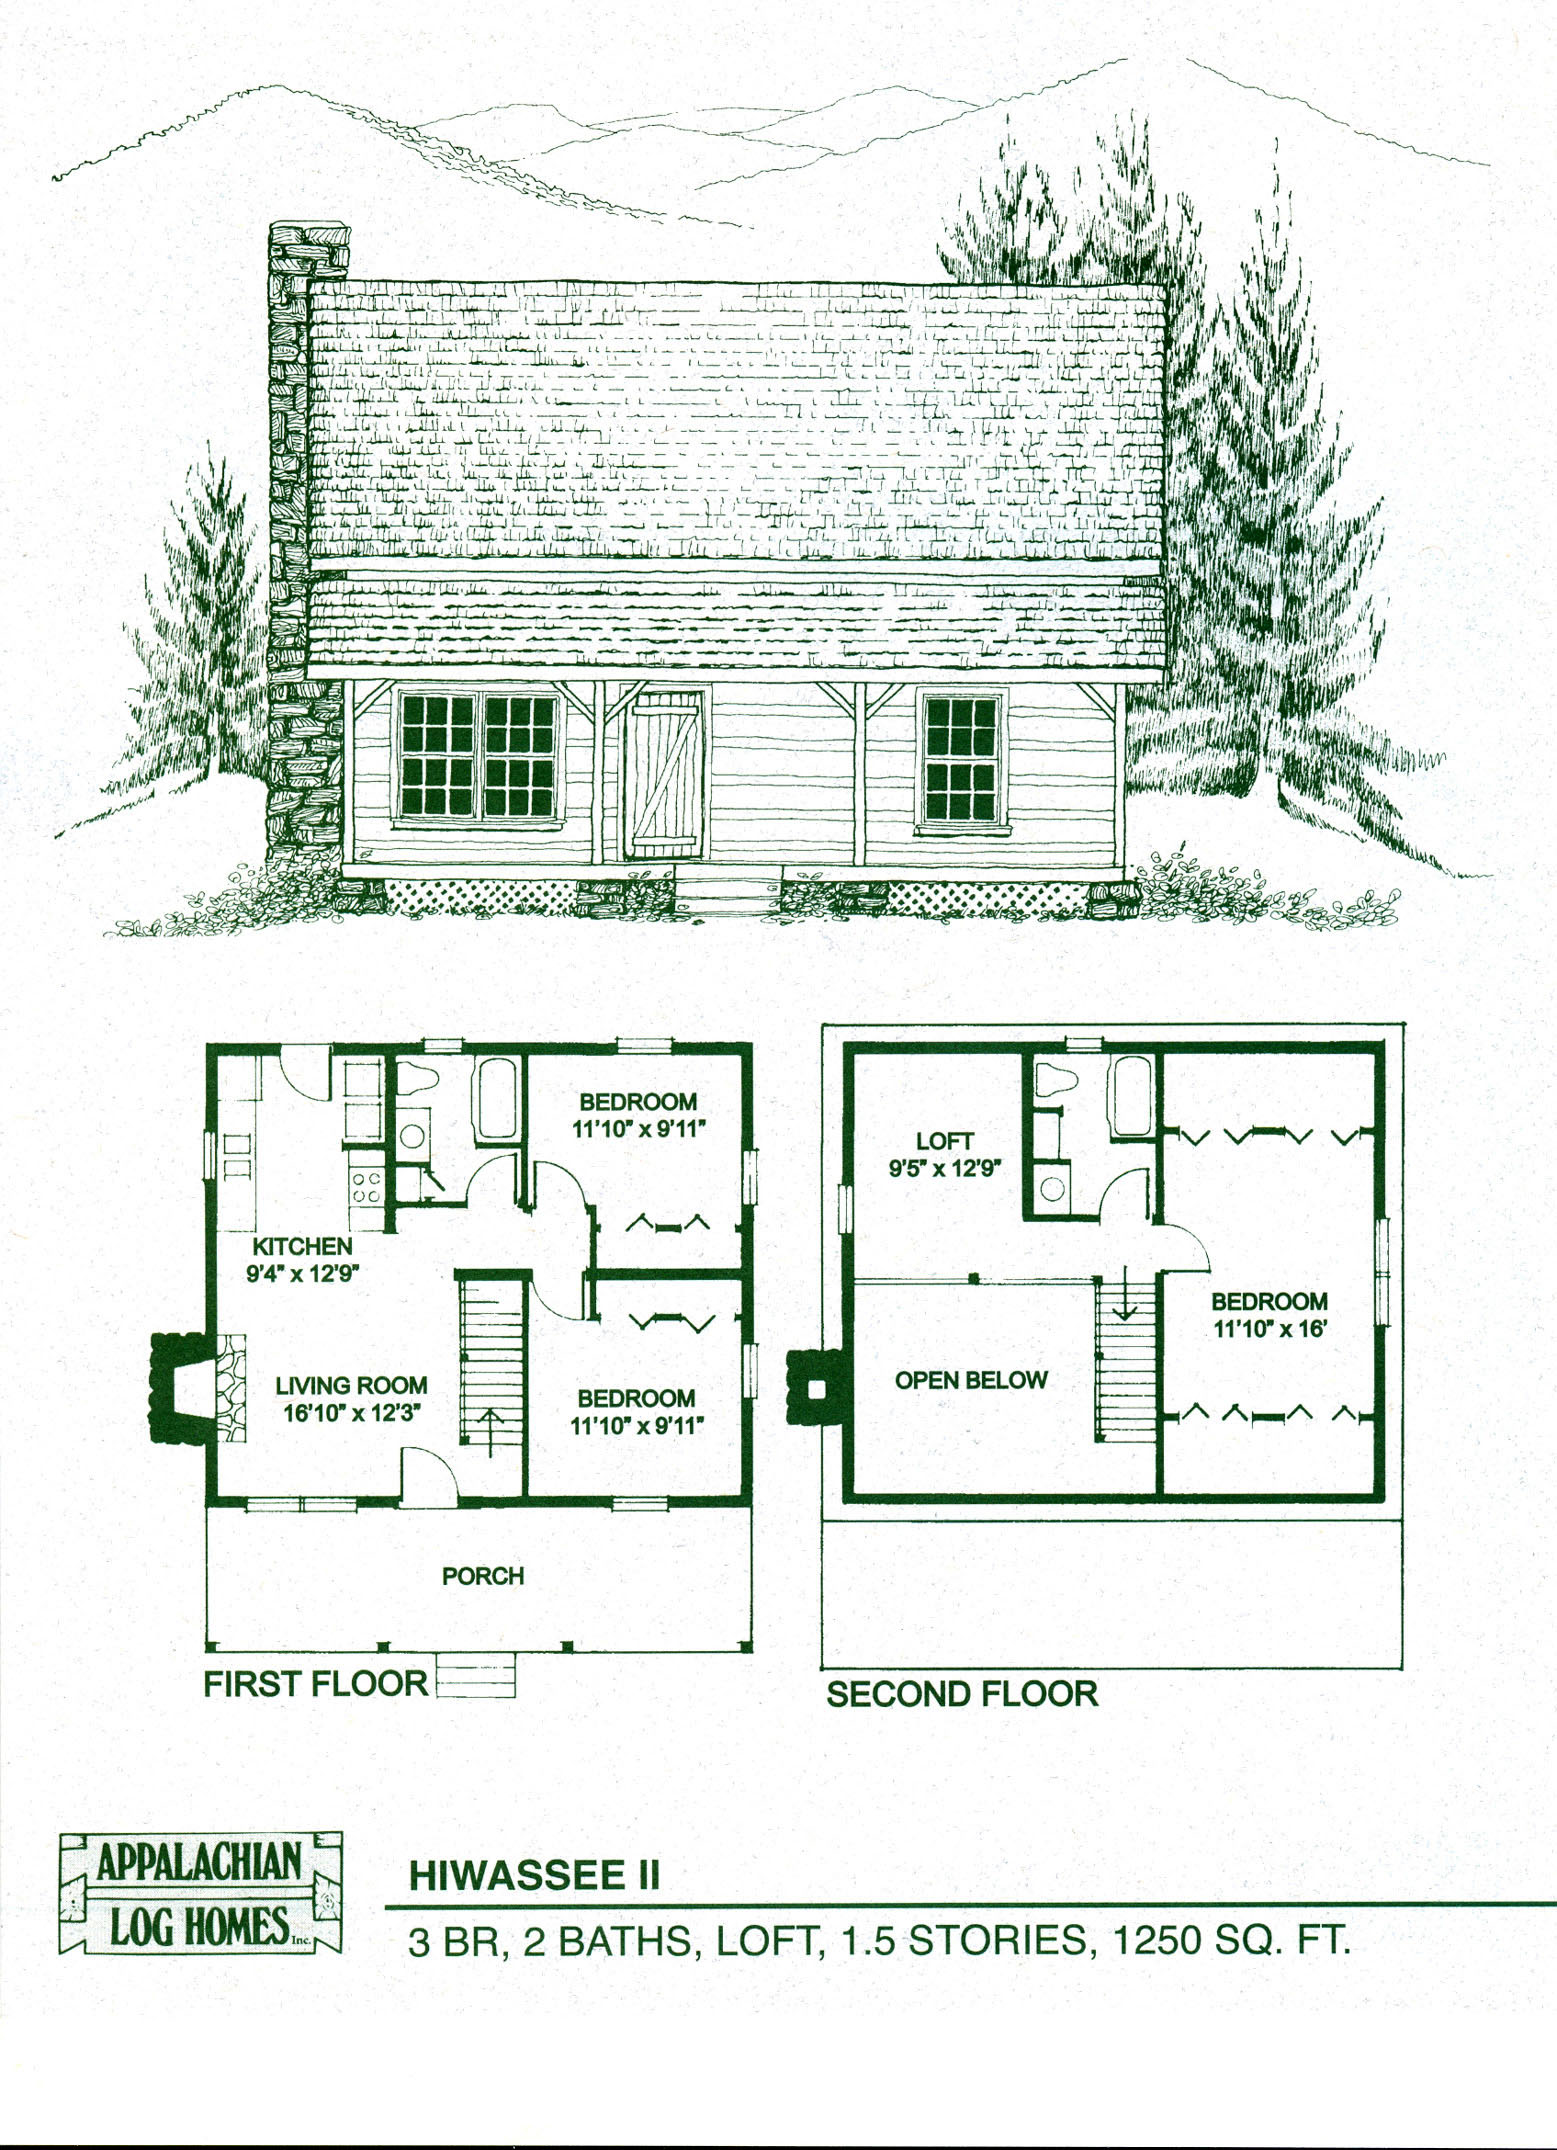 Simple log cabin drawing at free for for Log homes floor plans with pictures